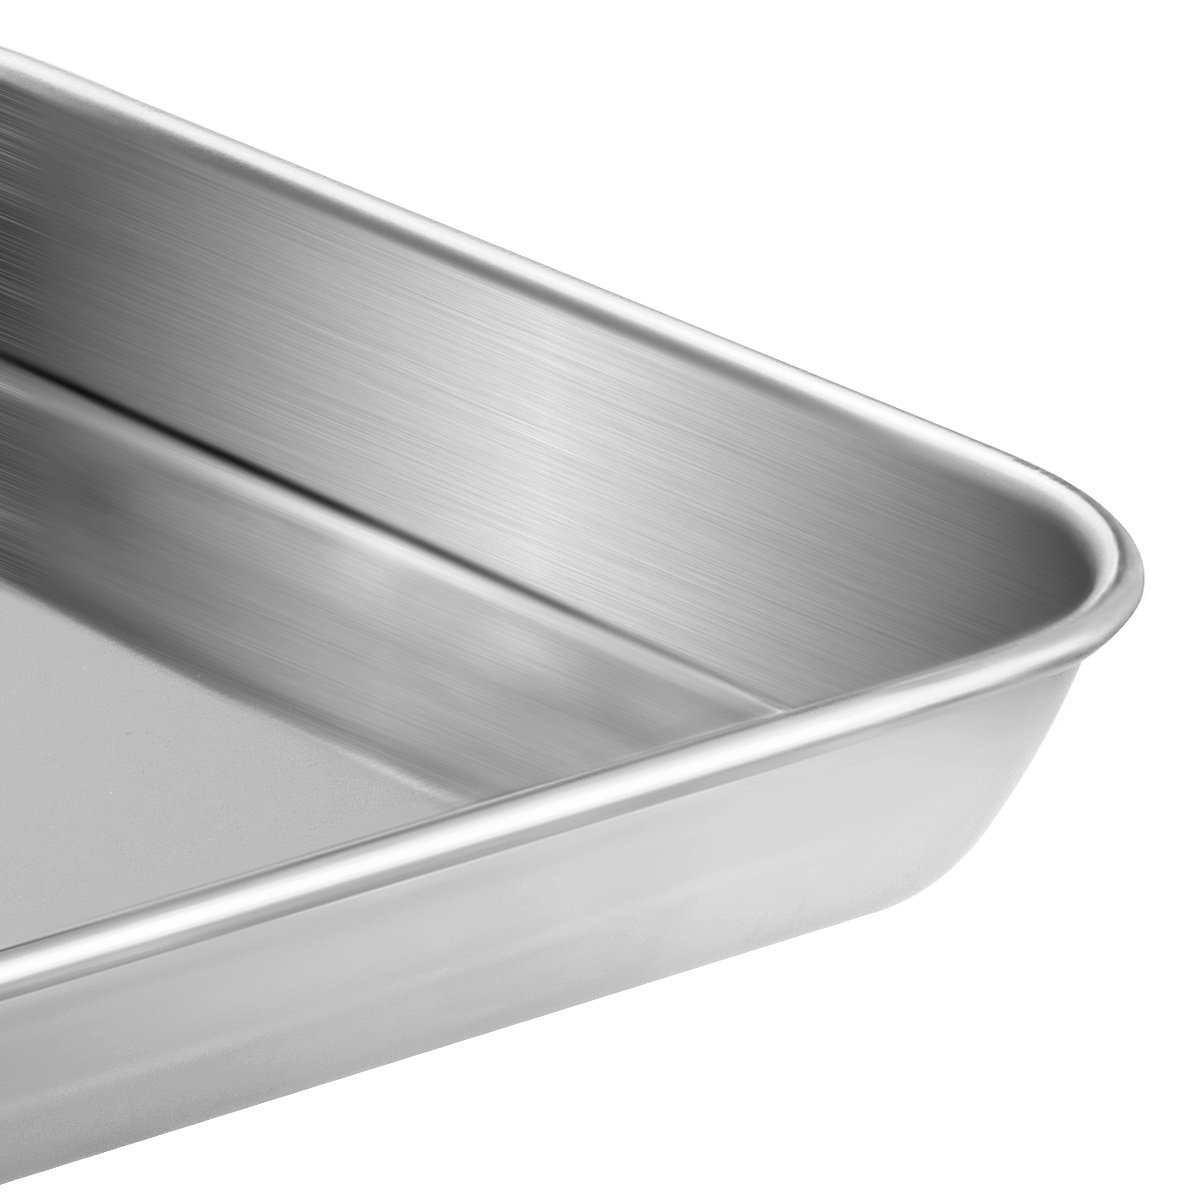 Stainless Steel Baking Sheets, HKJ Chef Baking Pans & Cookie Sheets for Oven & Mini Toaster Oven Tray Pans & Non Toxic & Healthy,Superior Mirror & Easy Clean by HKJ Chef (Image #5)